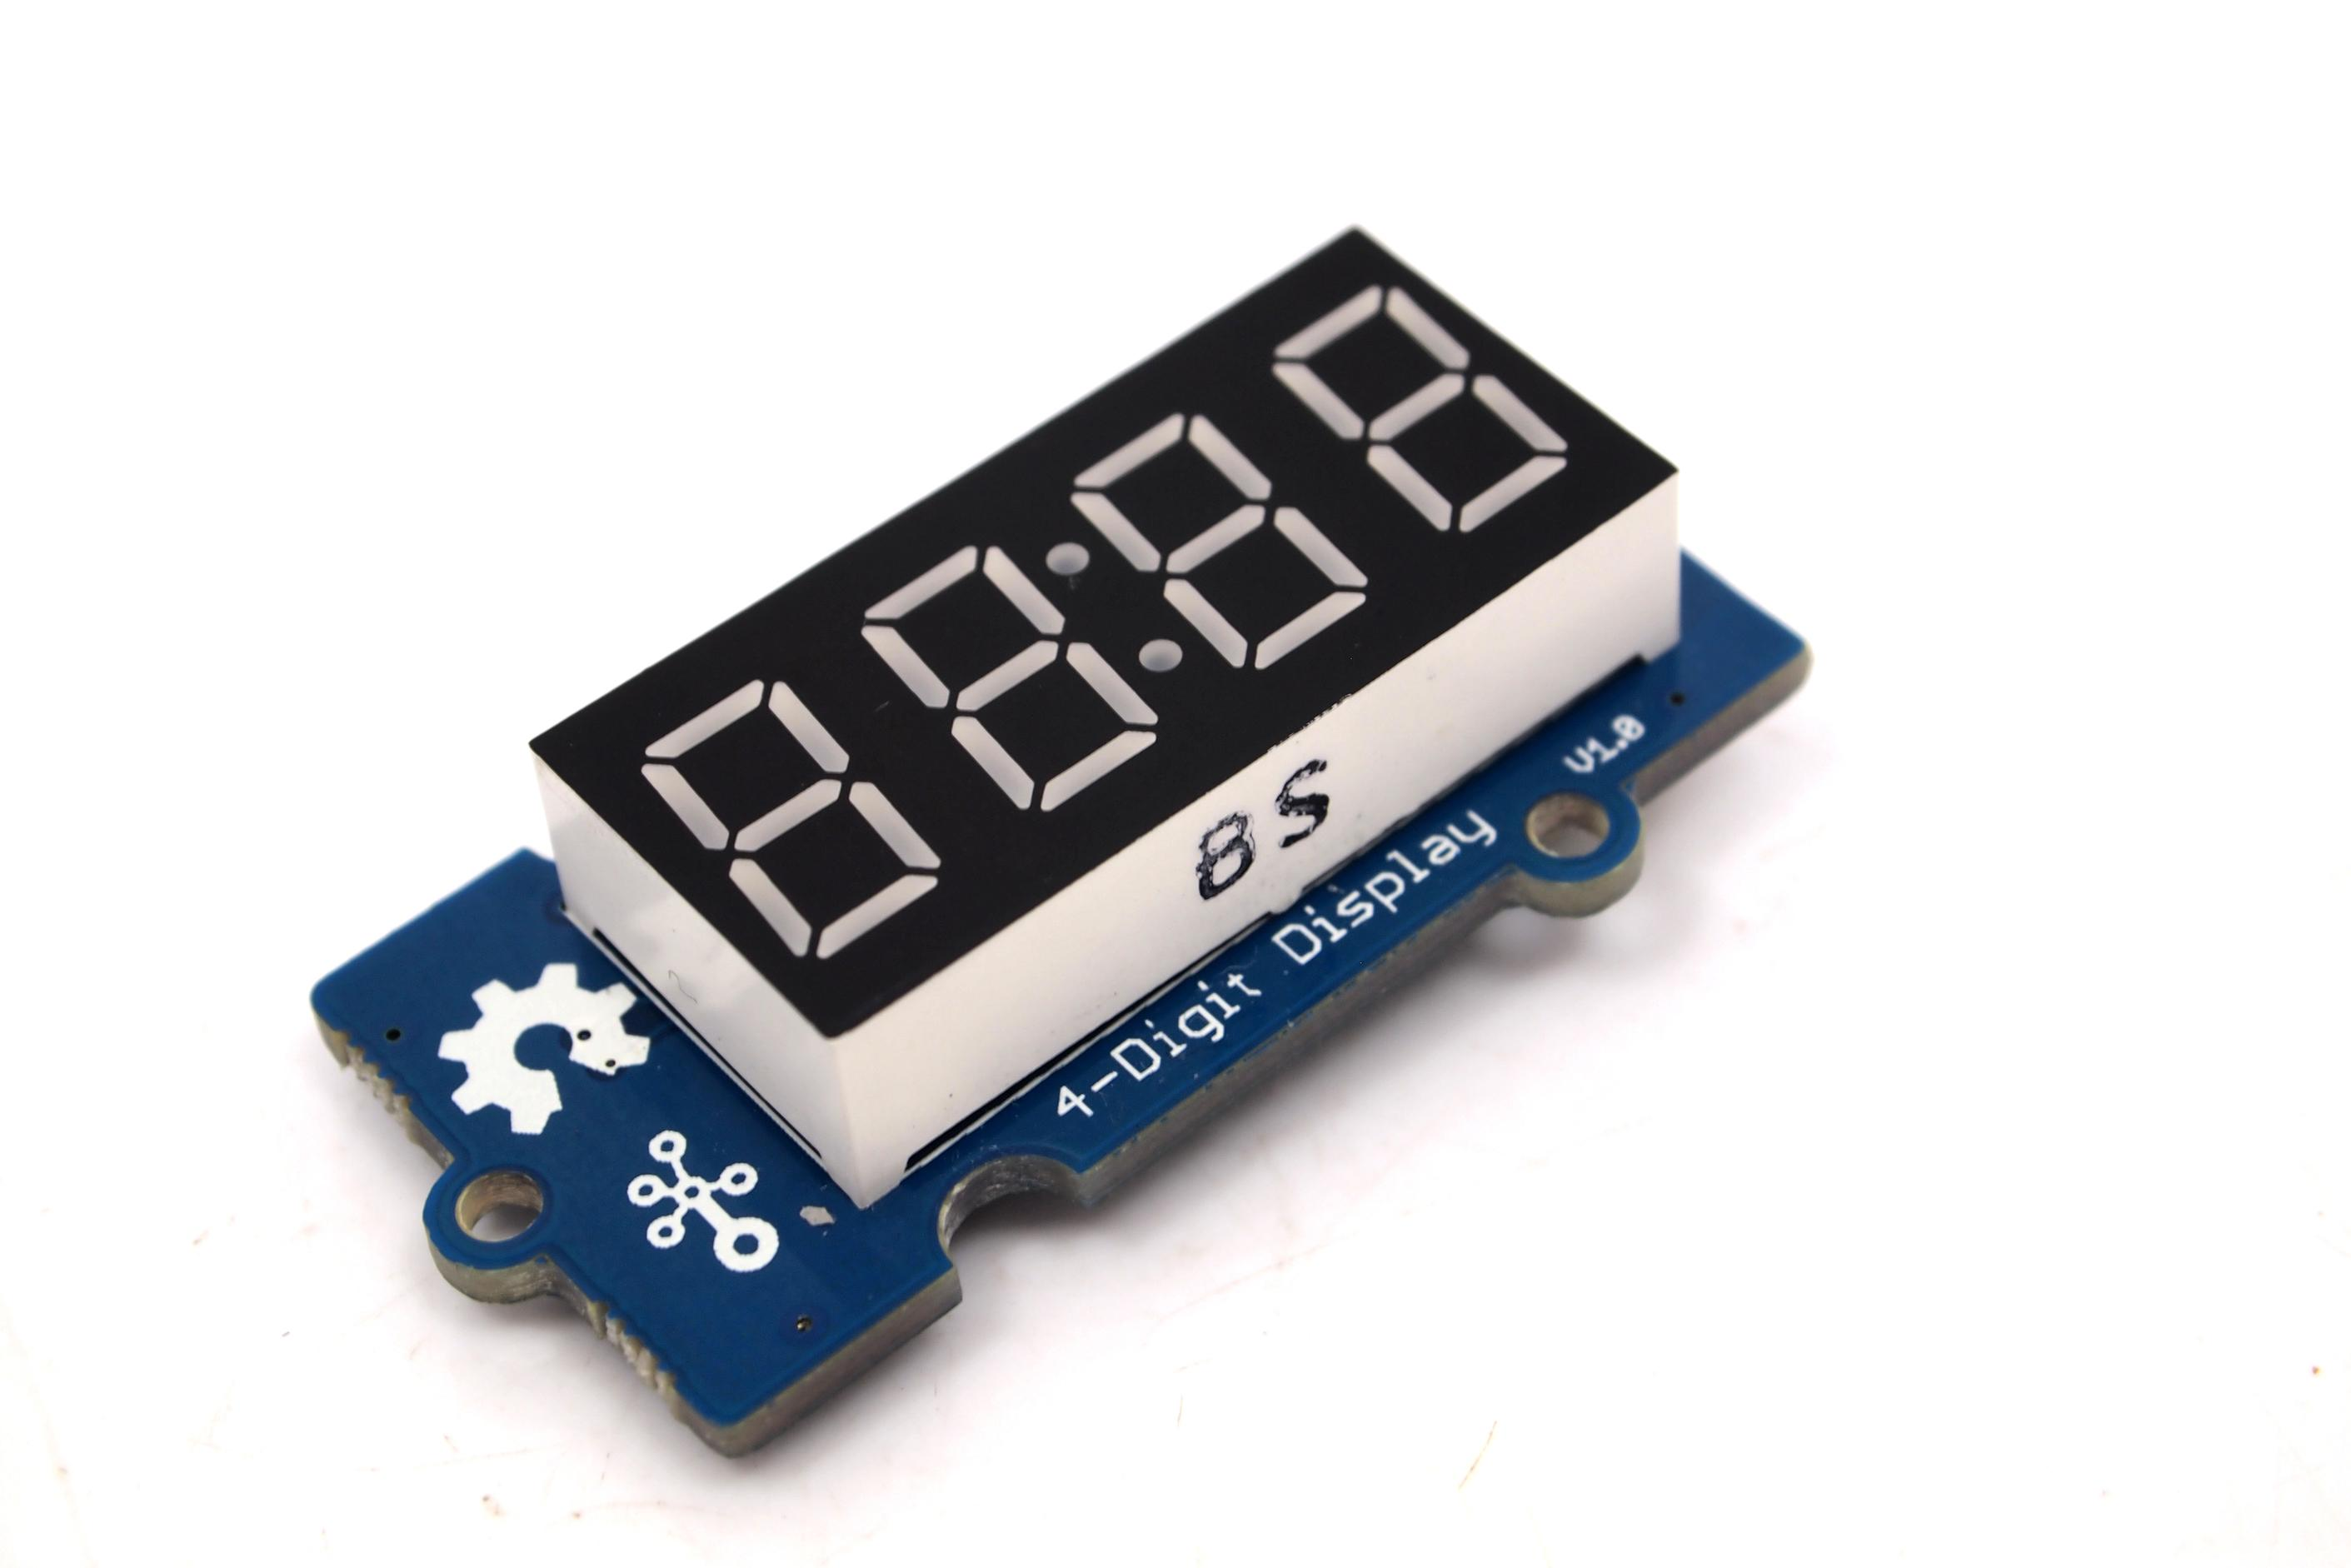 Grove - 4-Digit Display - Seeed Wiki